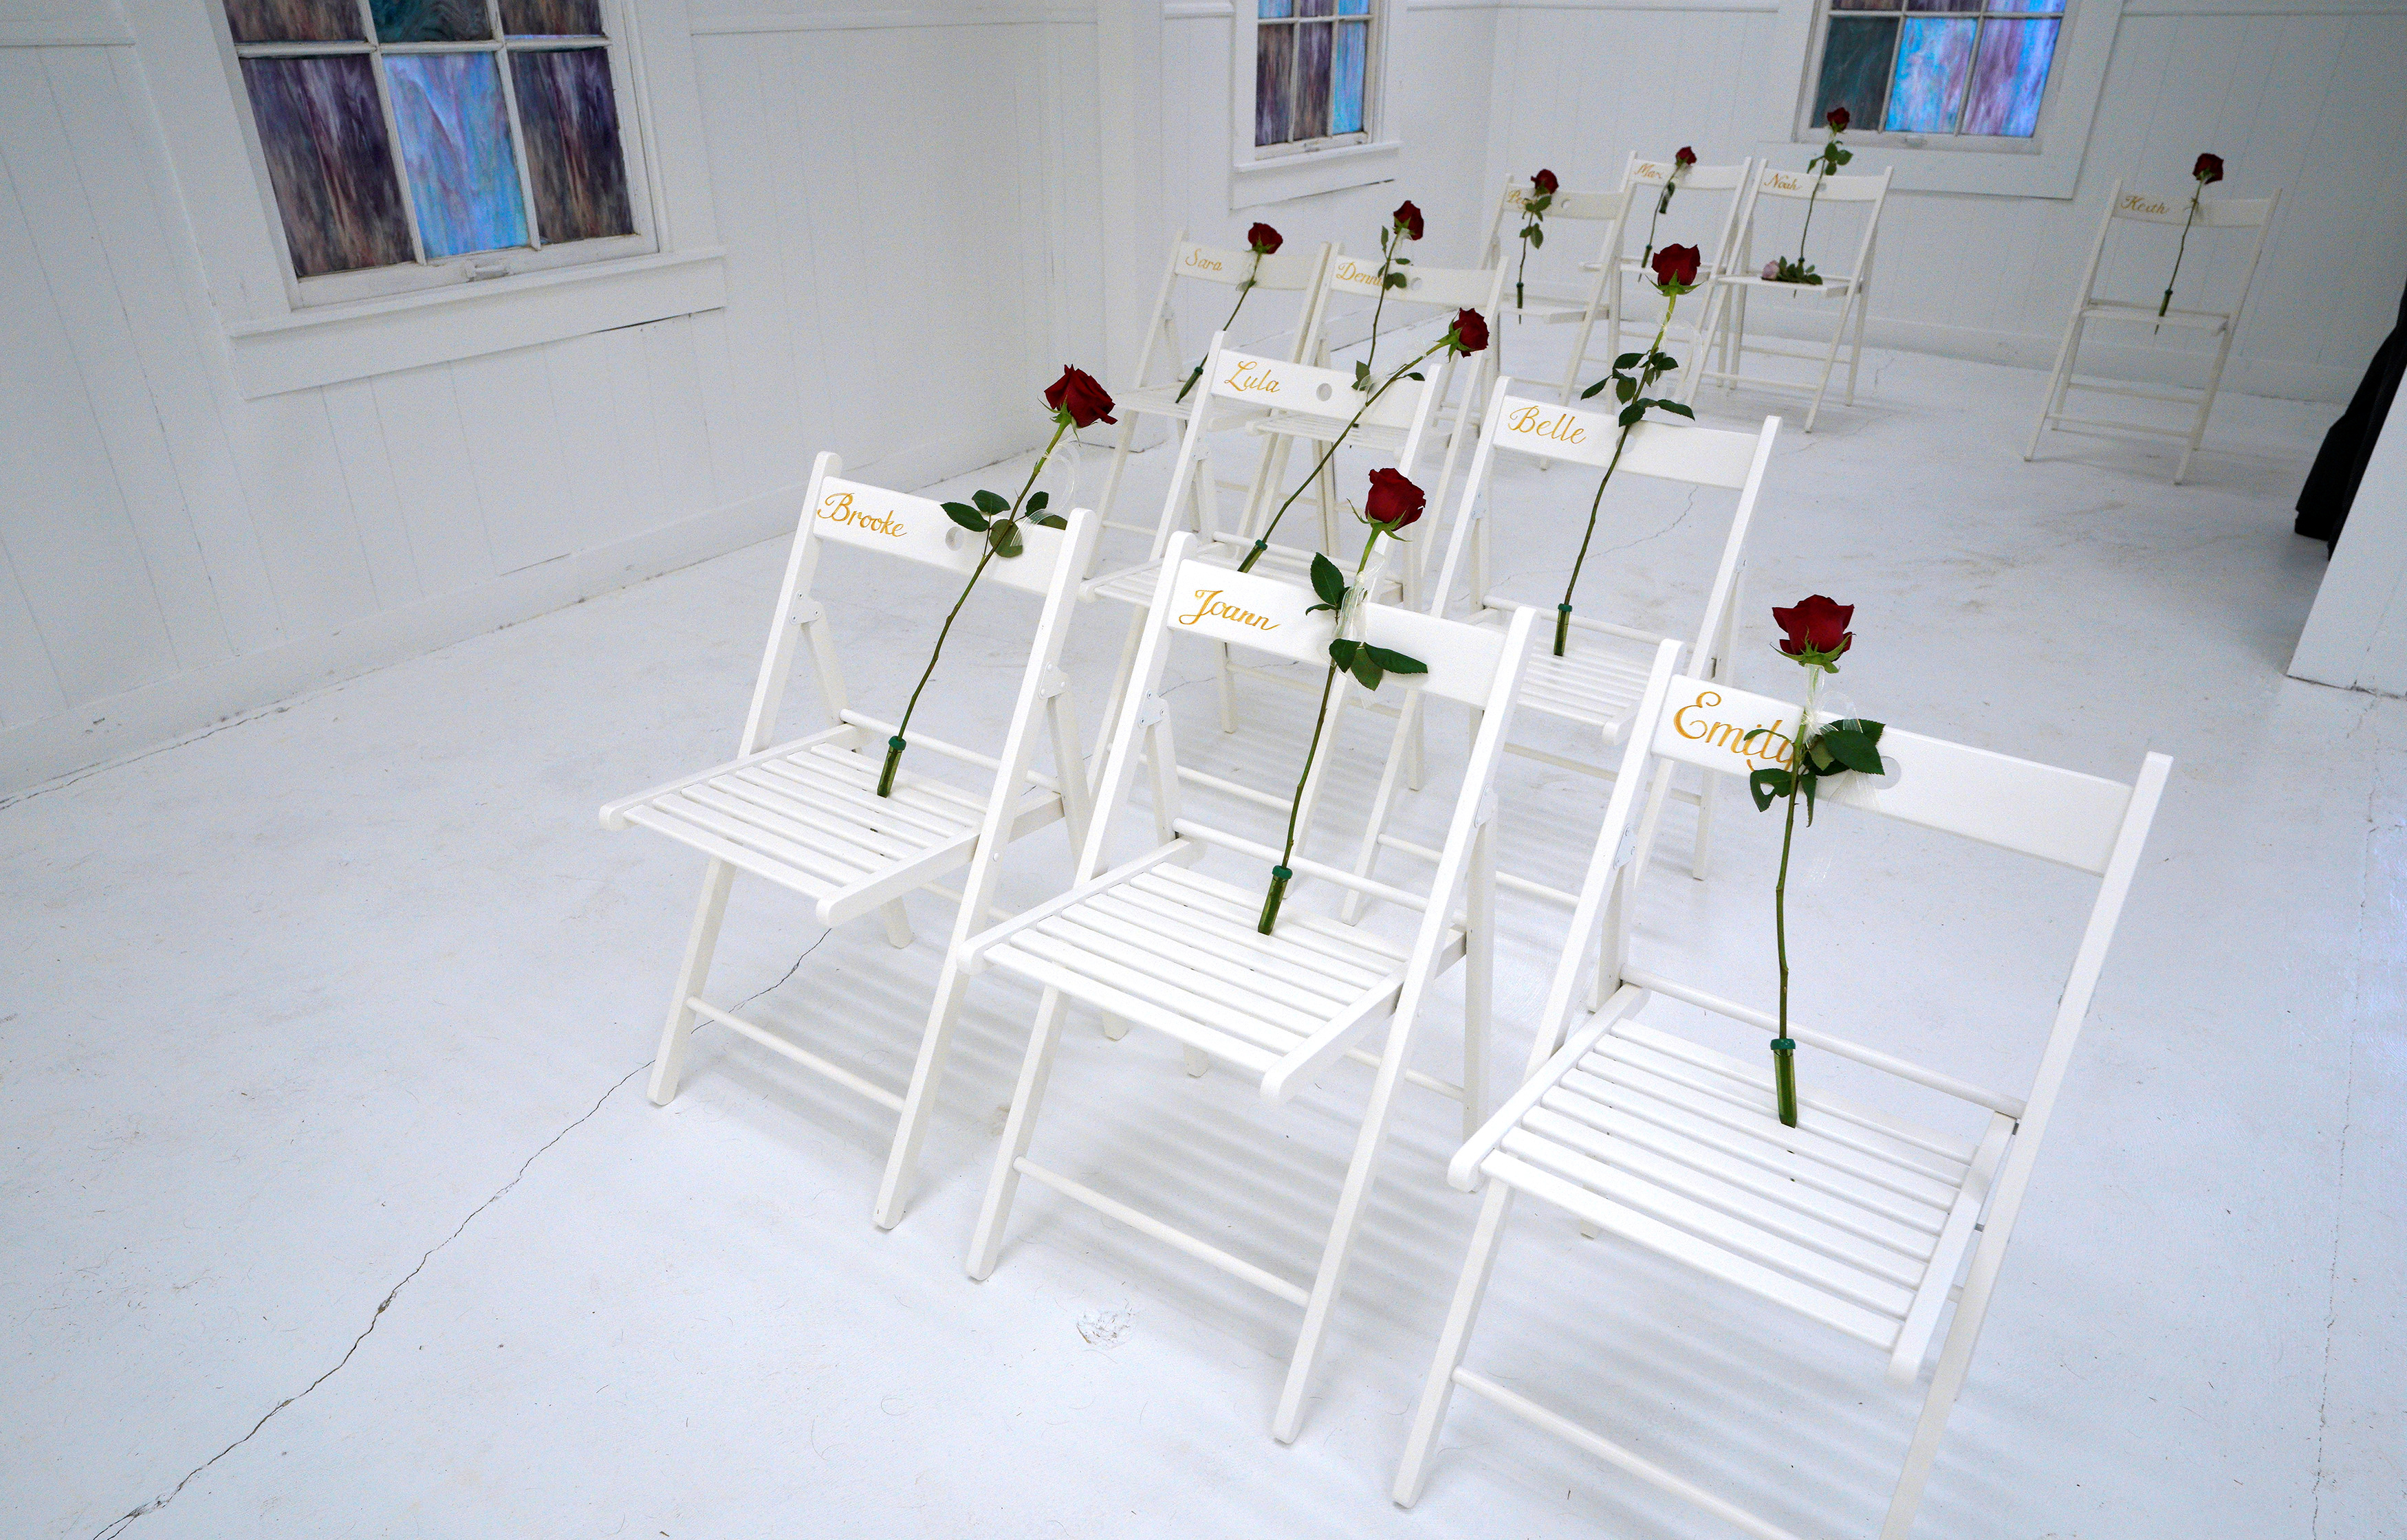 Chairs and roses show where Joann and Brooke Ward and others were found dead at the First Baptist Church of Sutherland Springs where 26 people were killed one week ago, as the church opens to the public as a memorial to those killed, in Sutherland Springs, Texas, U.S. November 12, 2017.